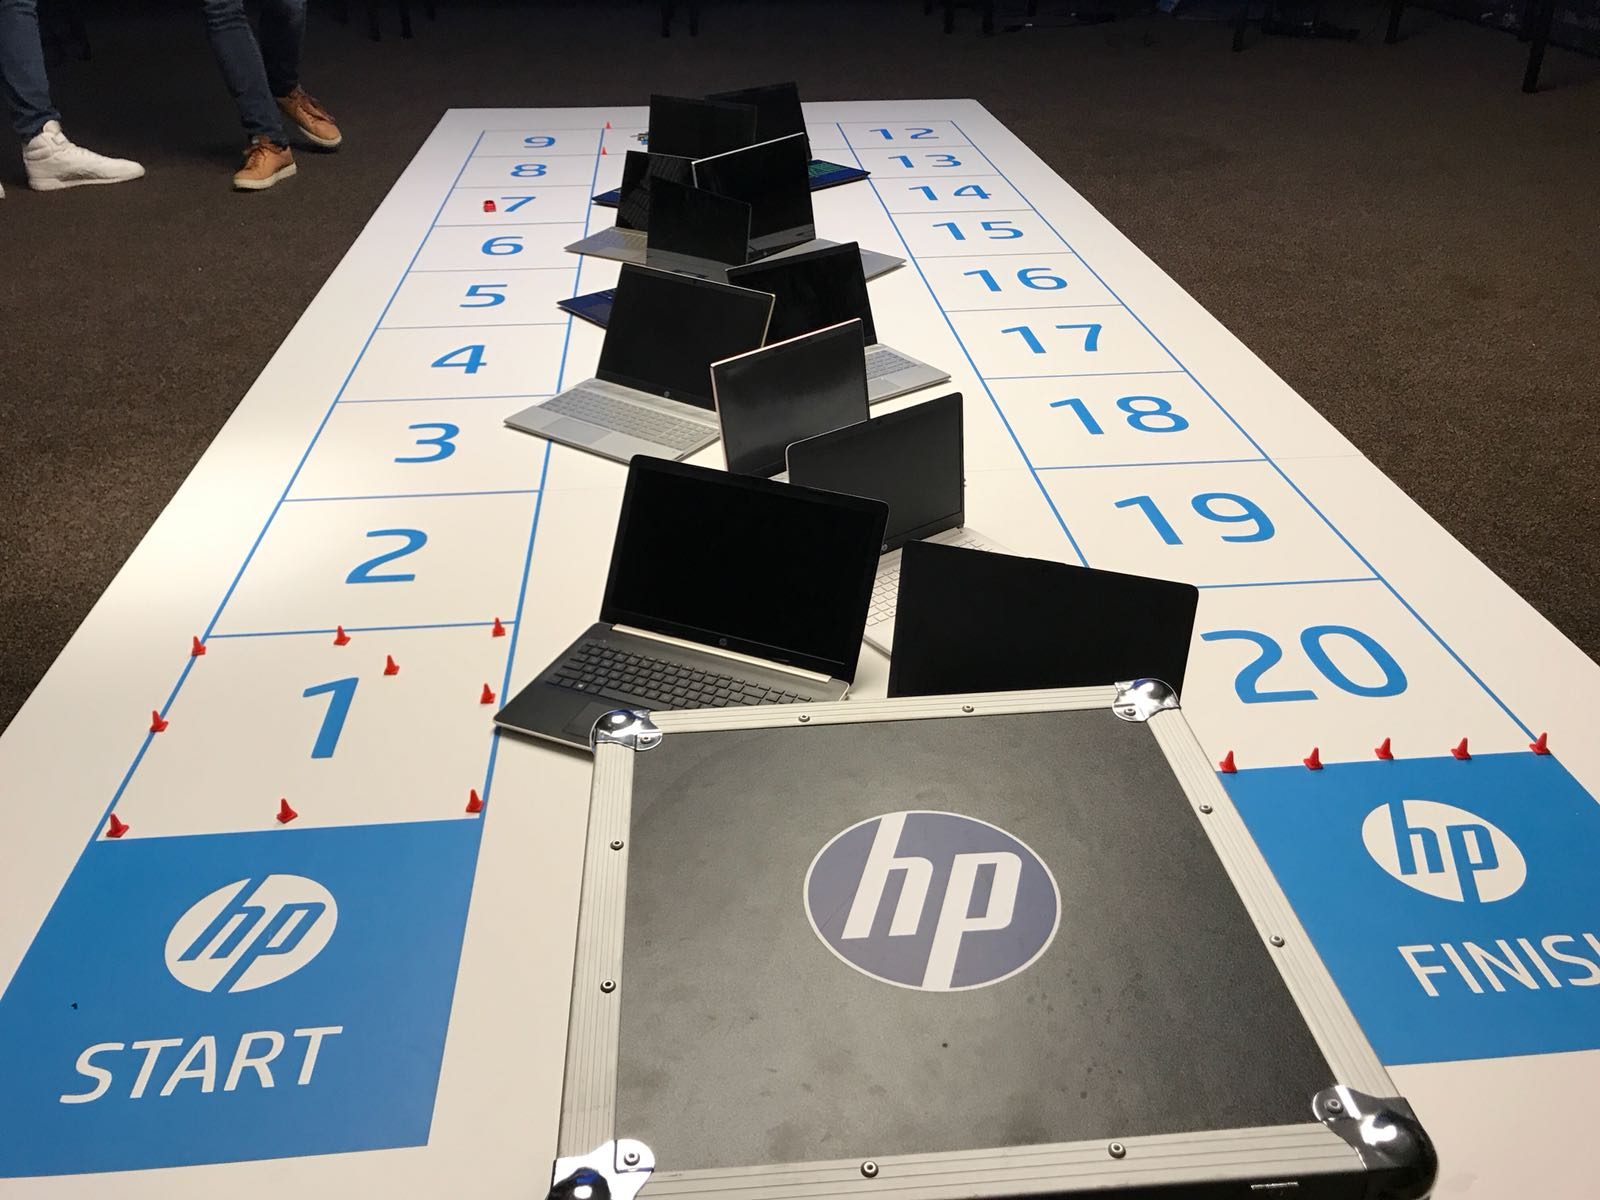 HP ganzenbord training